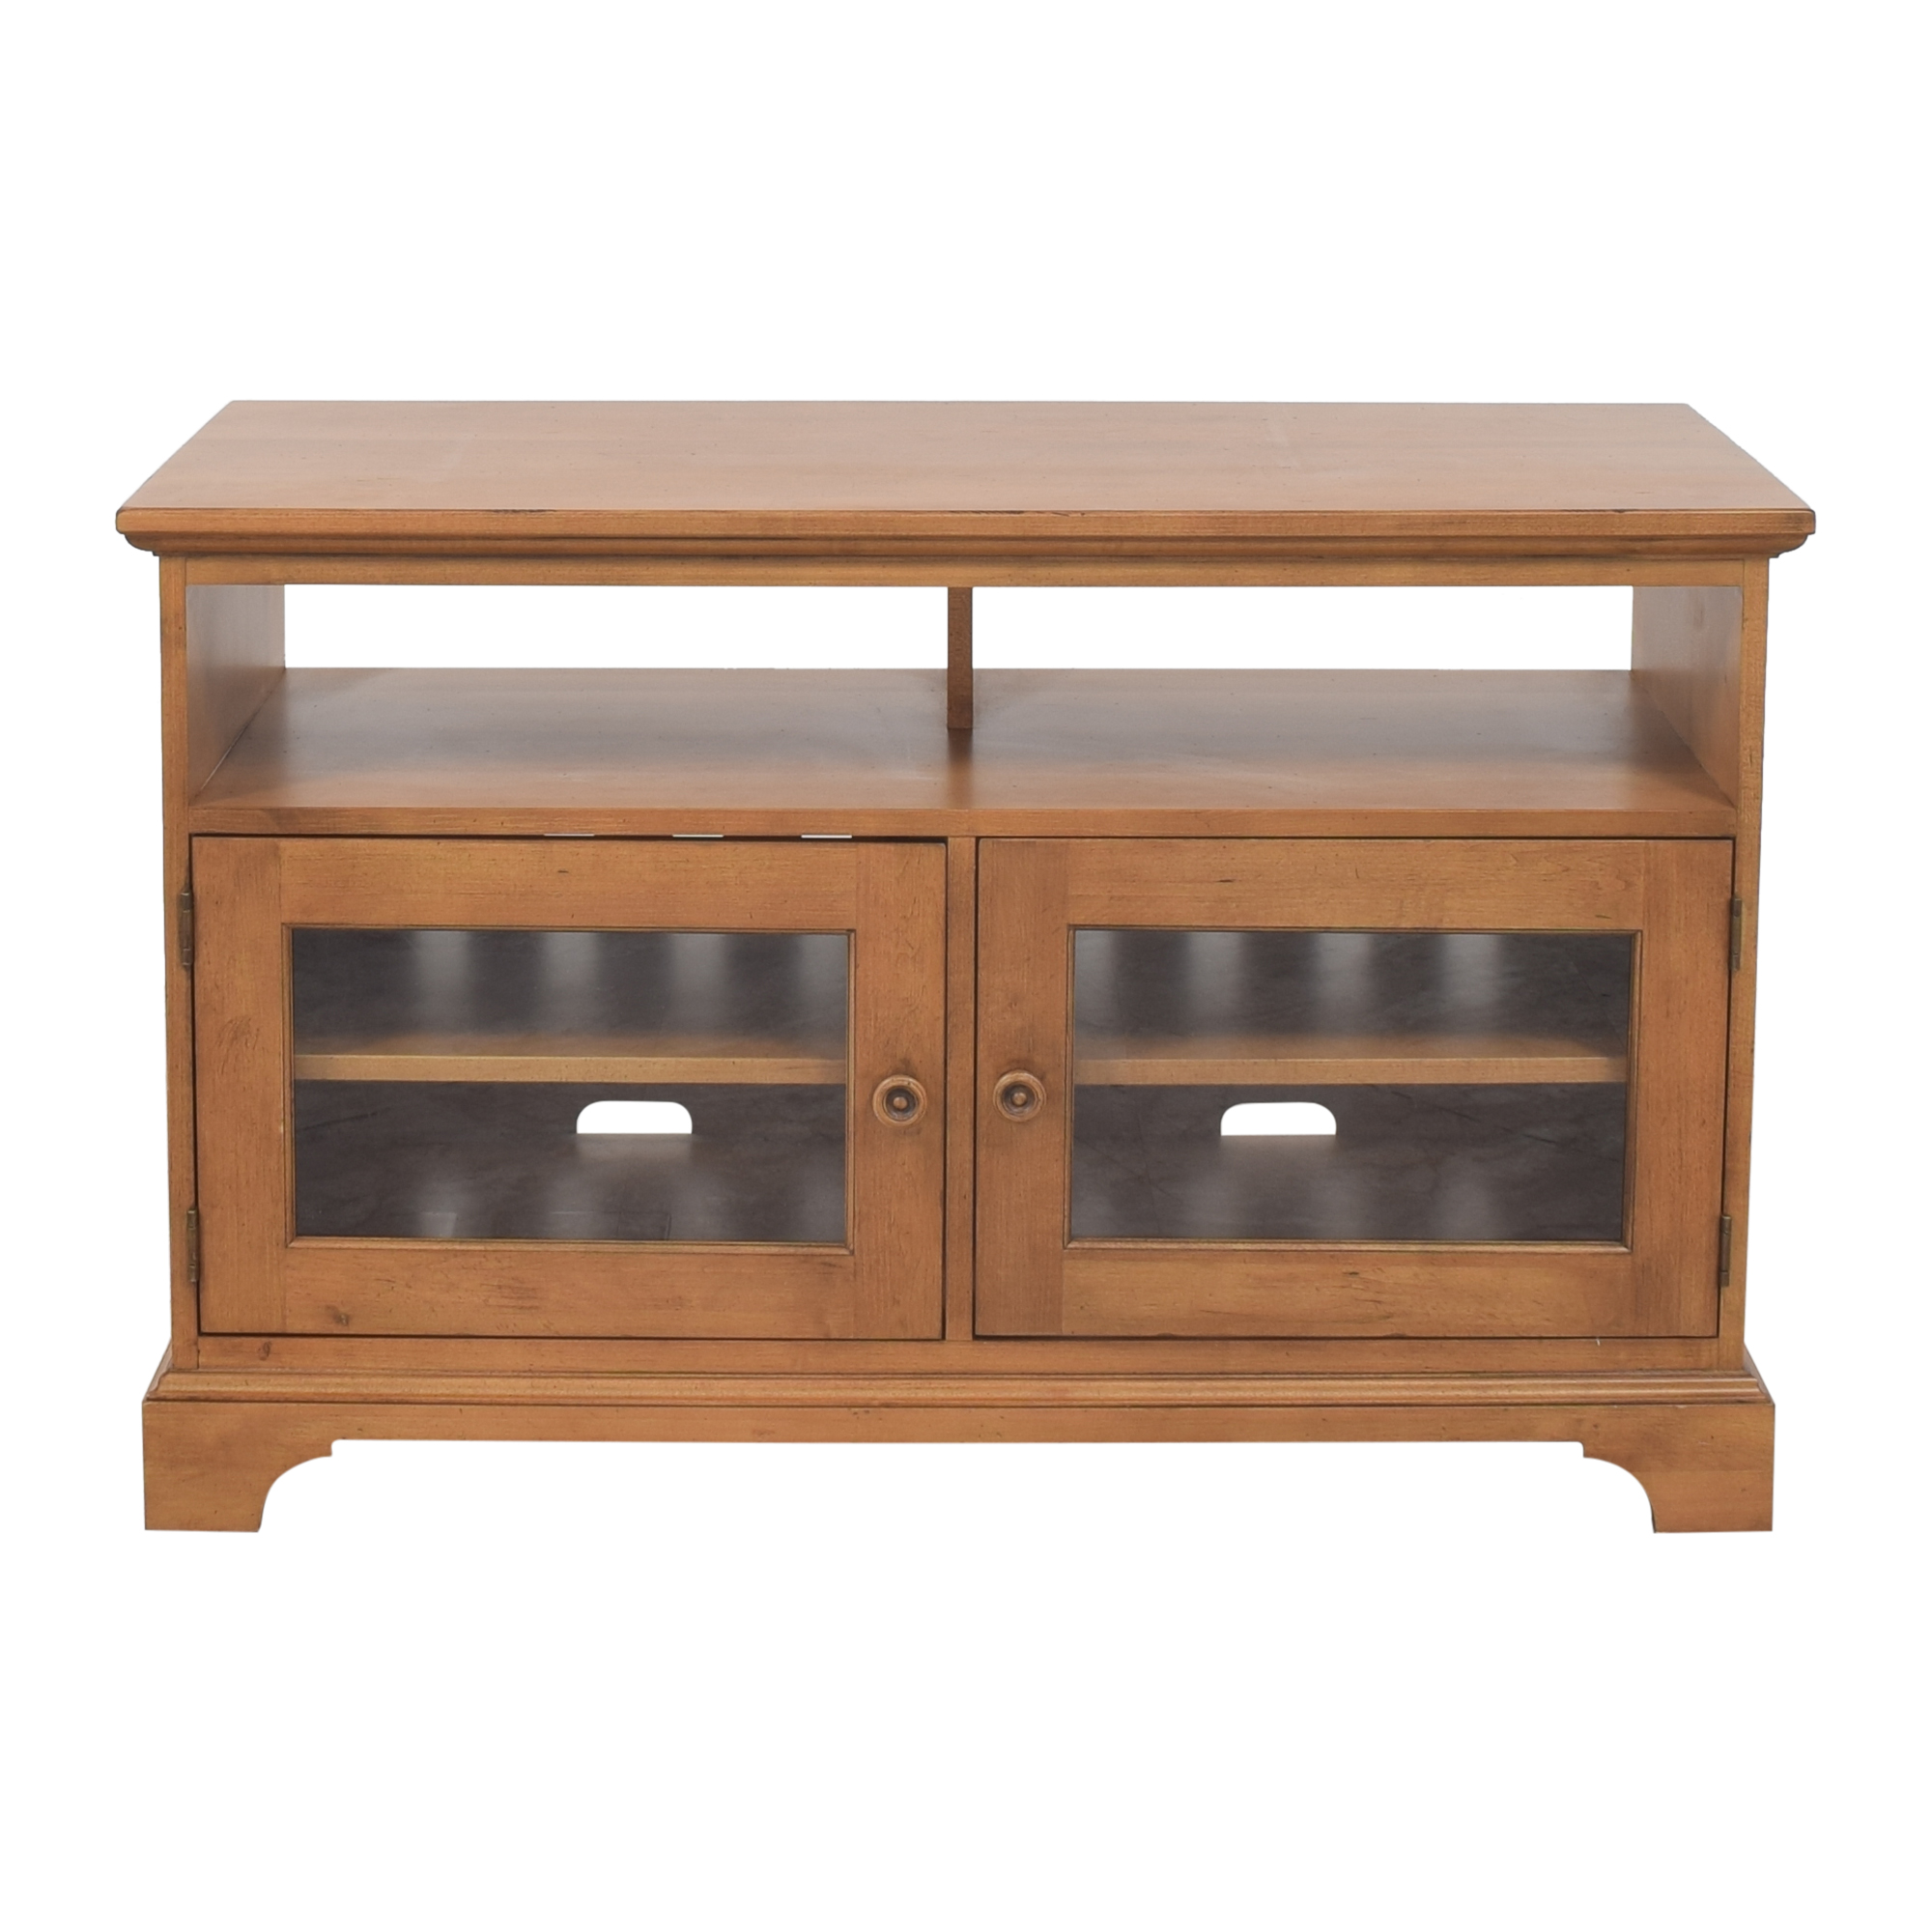 Ethan Allen Ethan Allen New Country Media Cabinet on sale